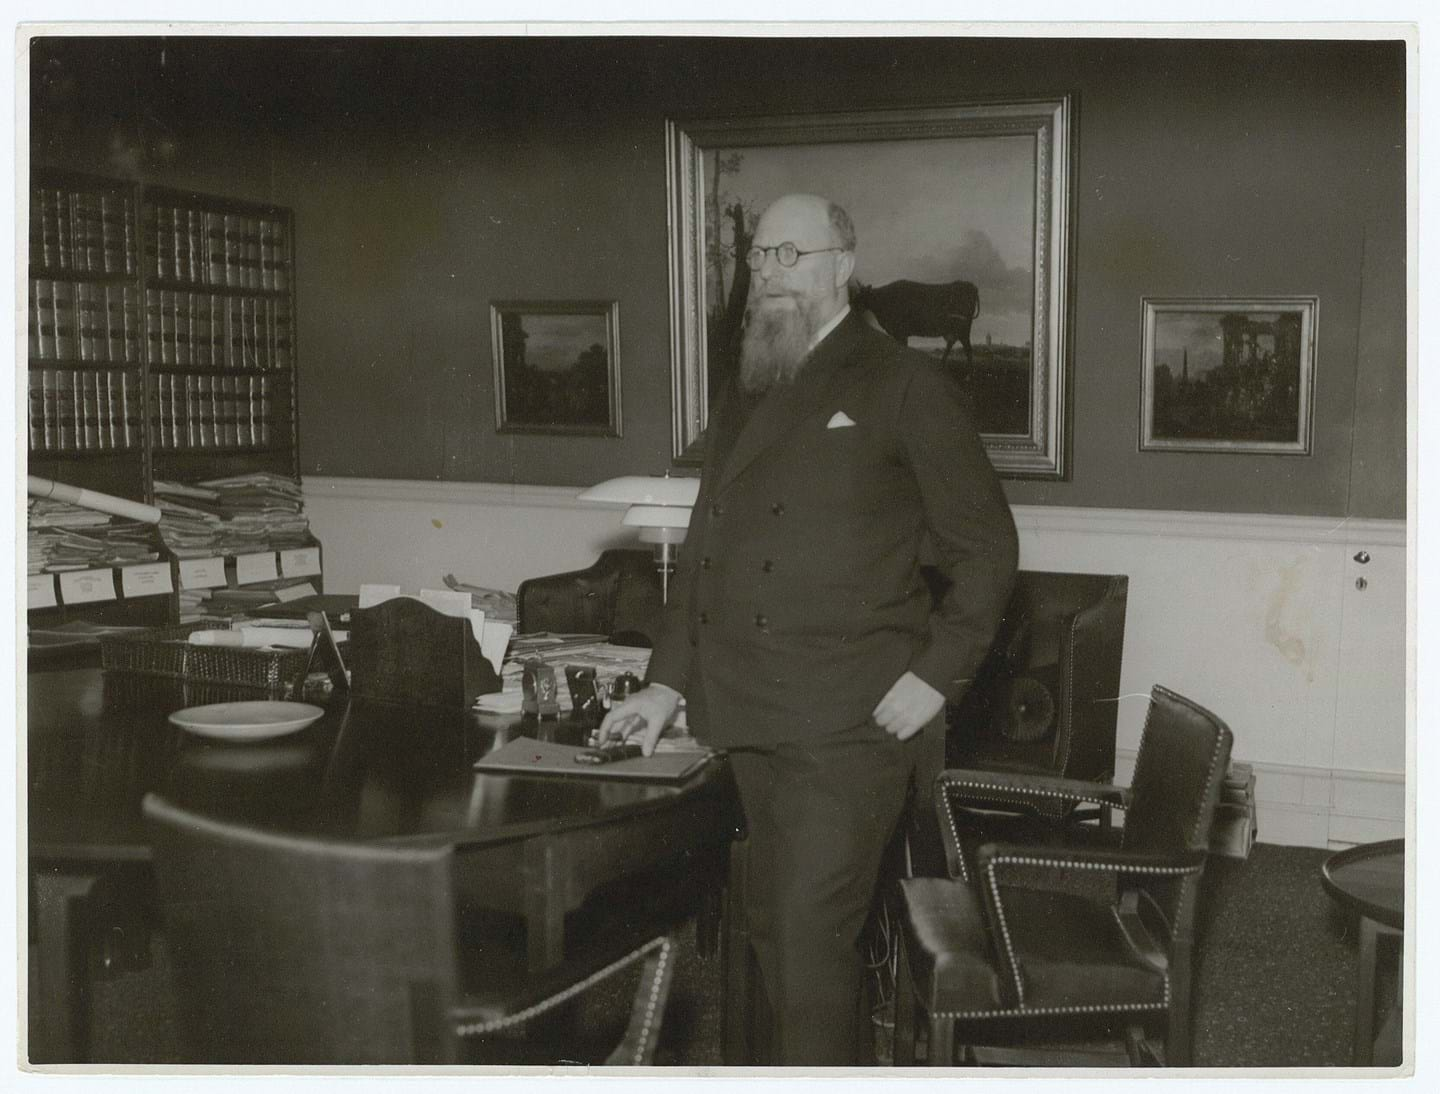 Thorvald Stauning in his office decorated with furniture designed by Kaare Klint. Photo credits: Royal Danish Library